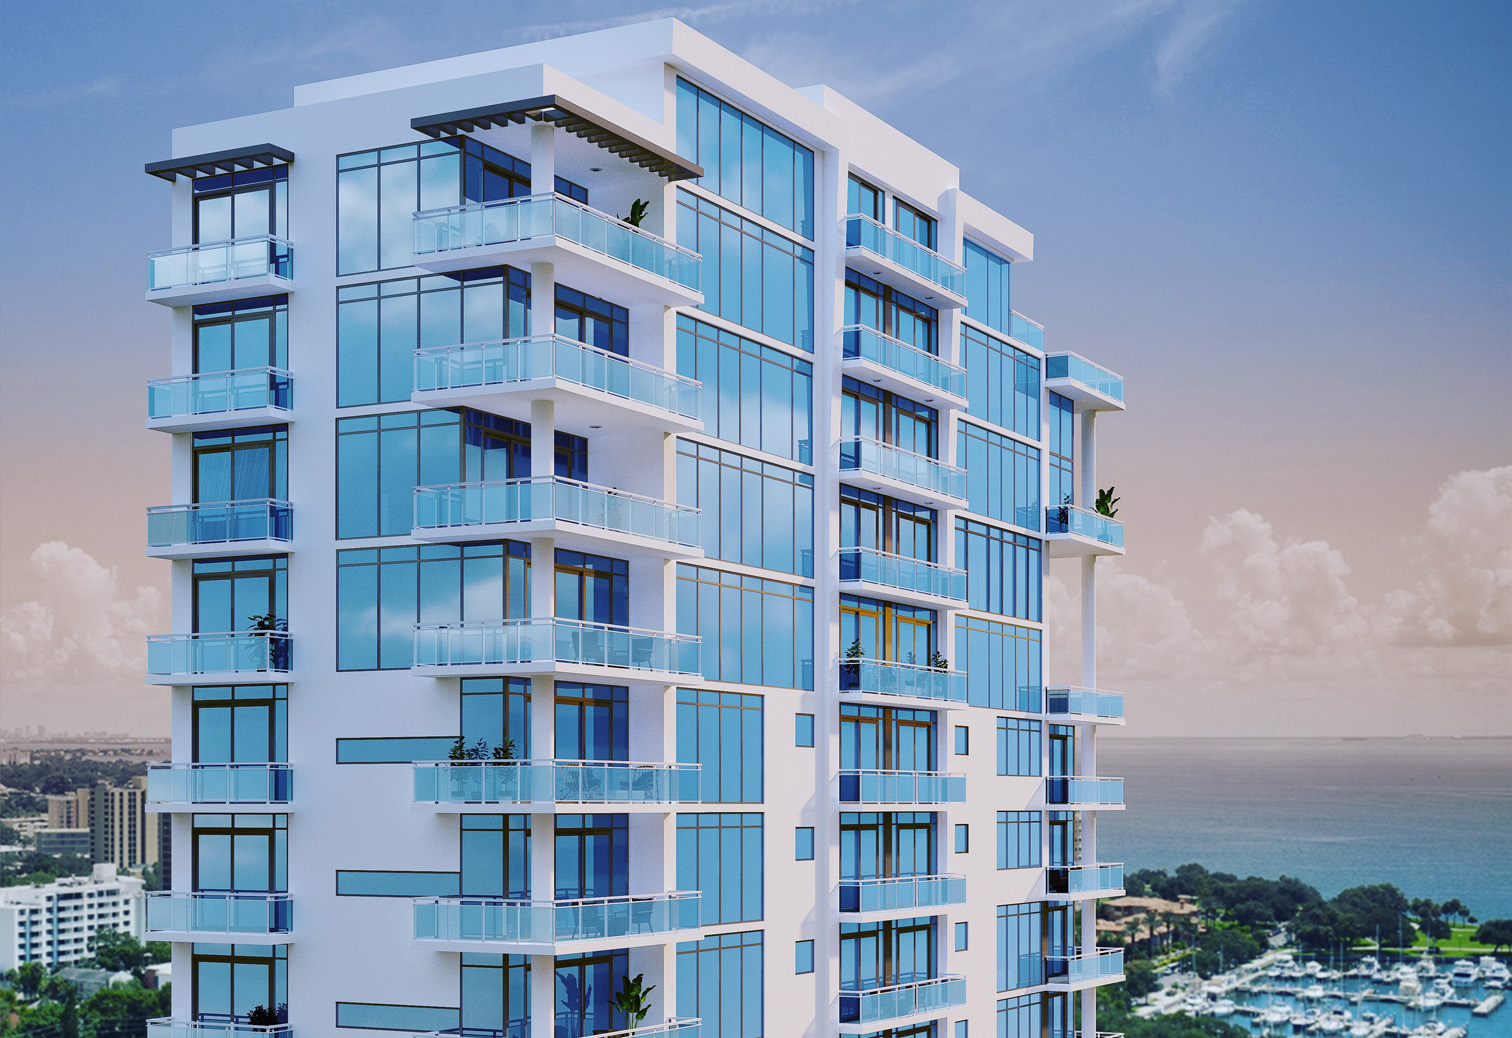 Image of Sales for The Julia, a 19-story condo tower, launch in downtown St. Pete.